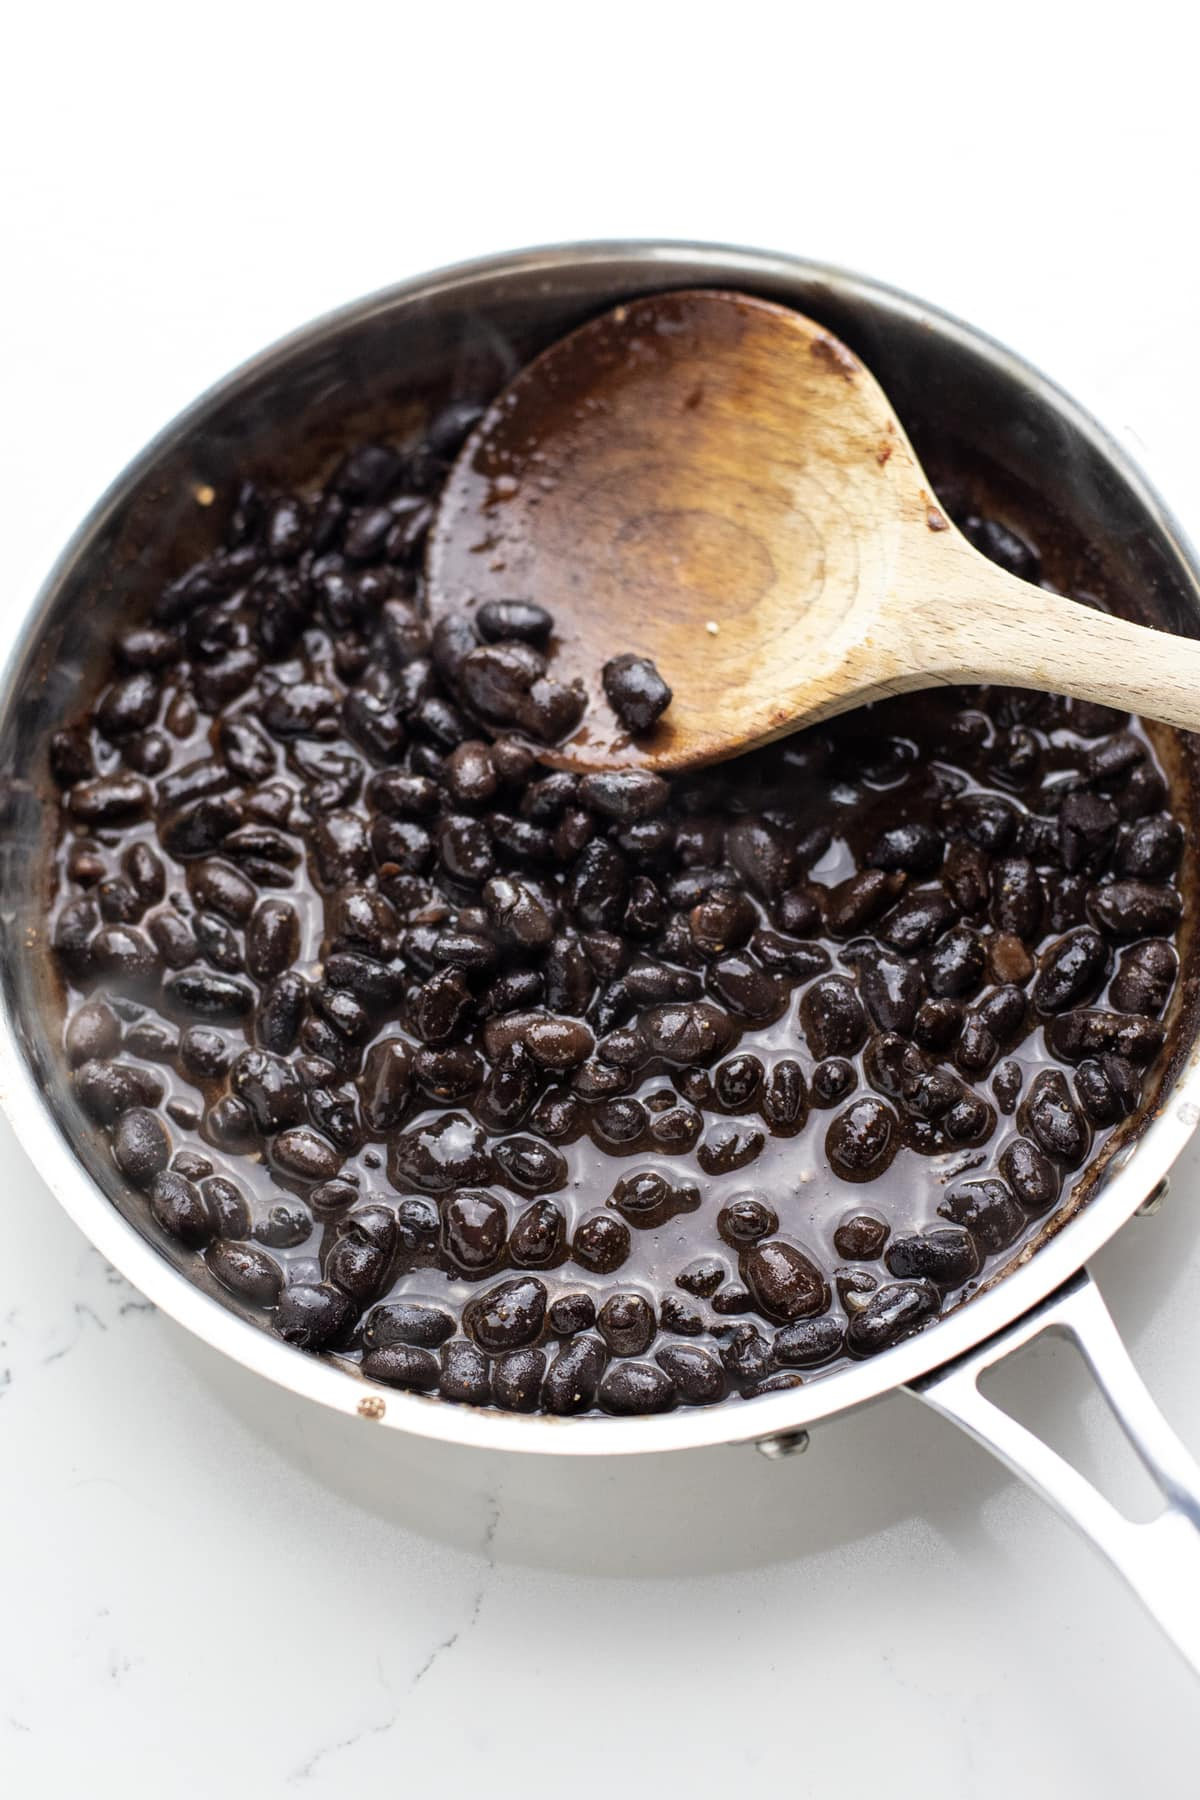 Black beans cooking in a silver pan with a wooden spoon in it.